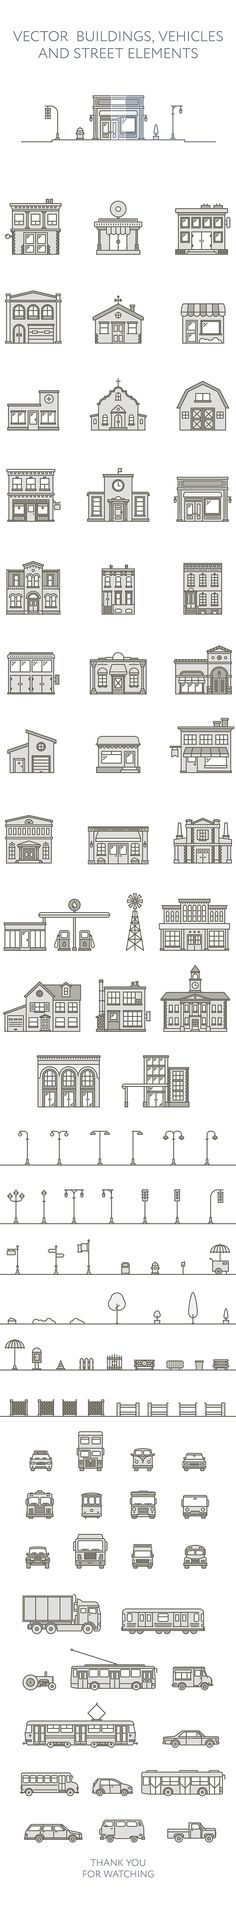 Vector Buildings, vehicles and street elements Web Design, Vector Design, Icon Design, Vector Art, Flat Design, Building Illustration, Illustration Vector, Affinity Designer, Graphic Design Inspiration